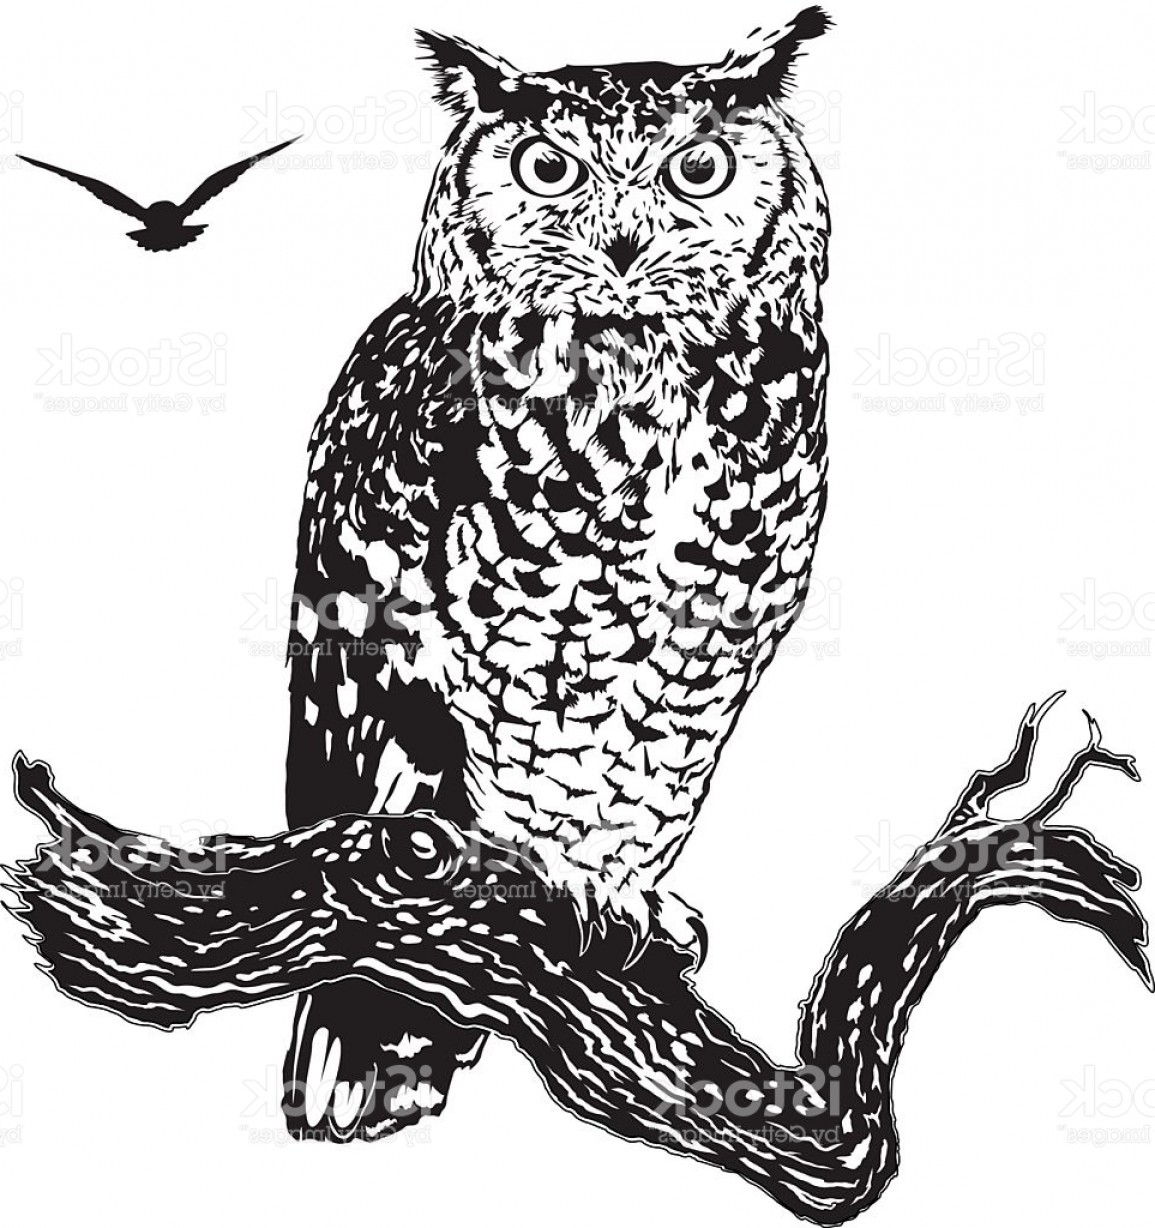 Owl Silhouette Vector Art: Owl Vector Graphic Decorative Tattoo Design Gm